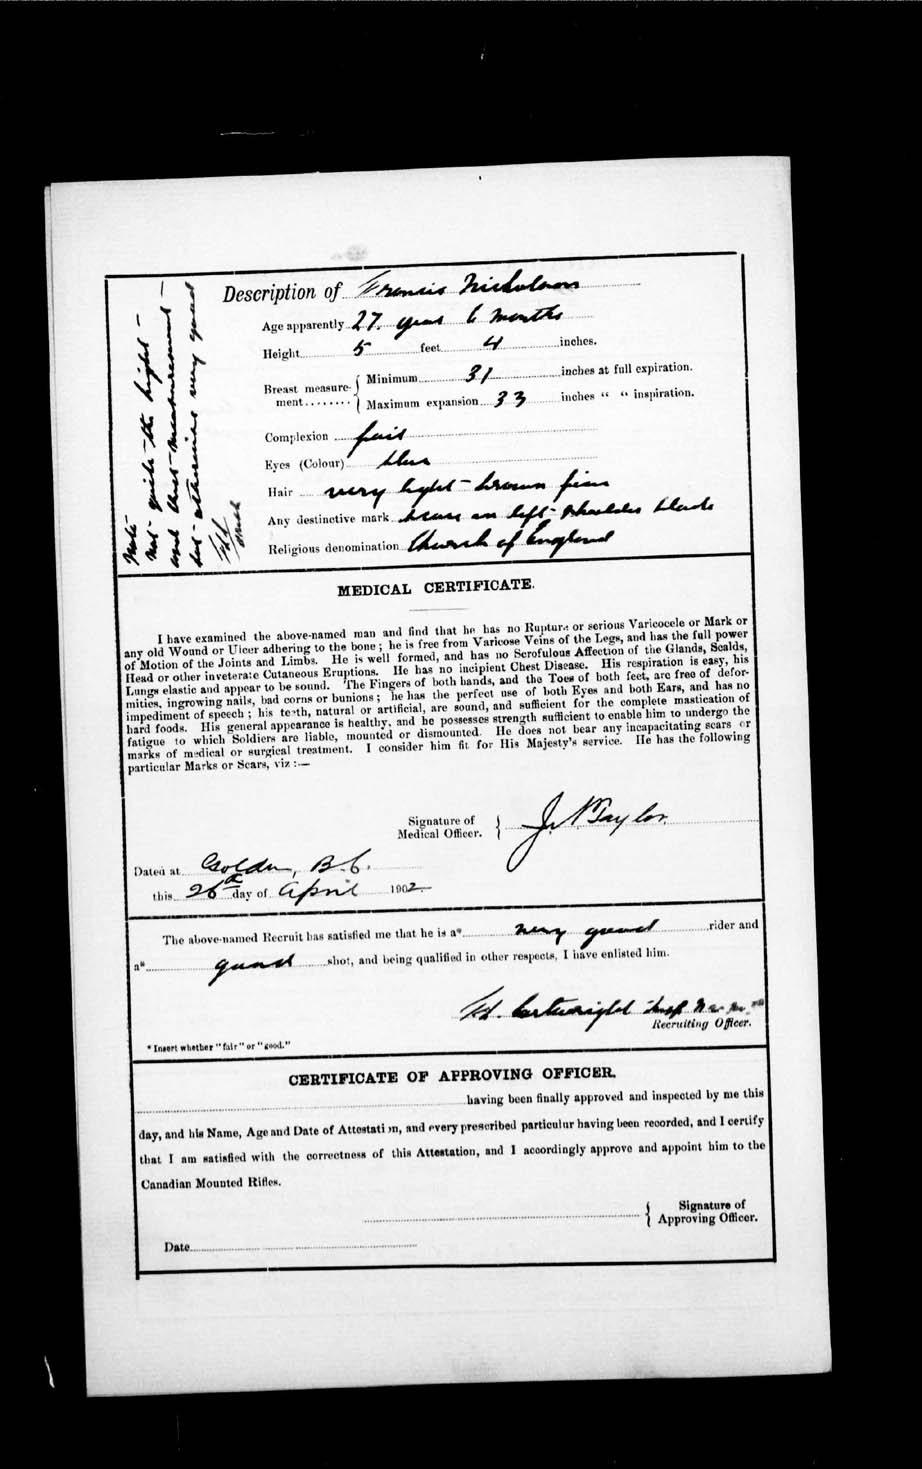 Digitized page of Boer War for Image No.: e002192895